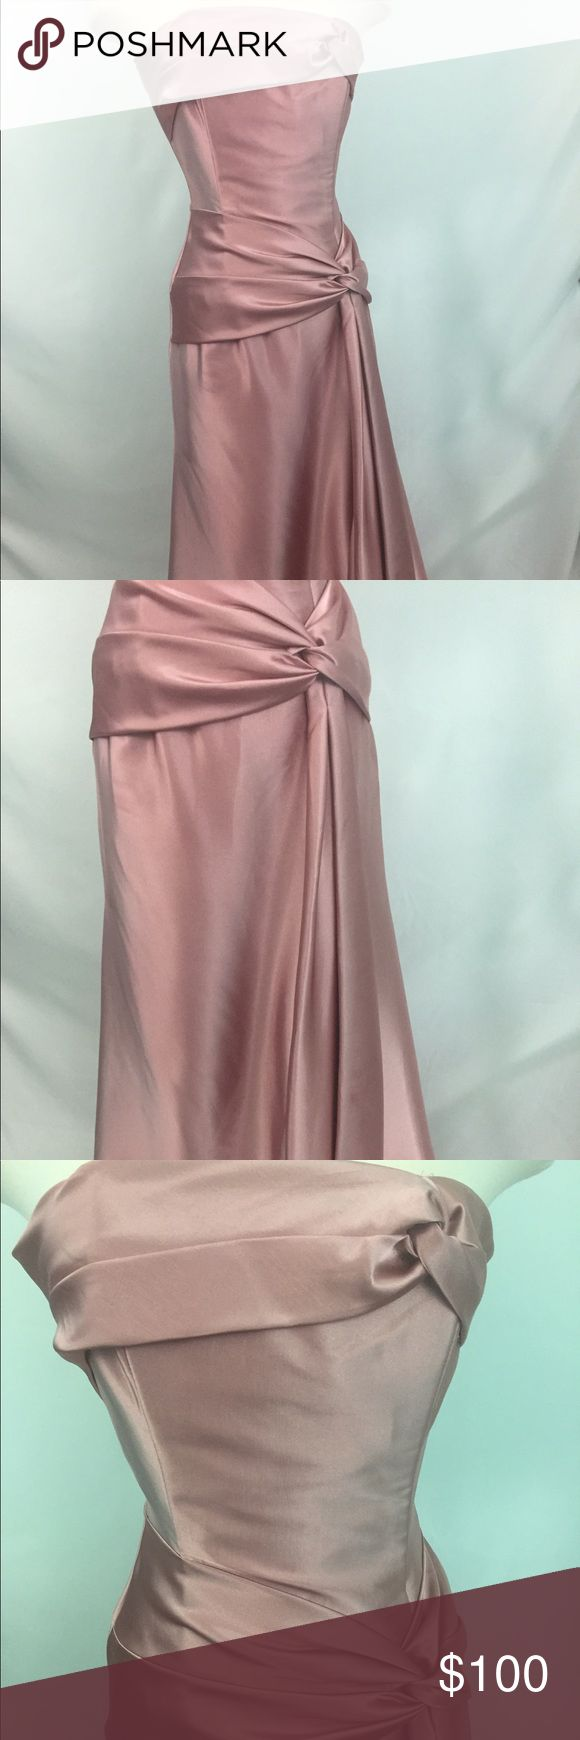 Jessica Mcclintock pink gown dress size 4 Jessica Mcclintock gown dress size -4 , color -pink . This Jessica Mcclintock gown dress is perfect for a bridesmaid dress , prom, or a elegant fancy party you have coming up. Jessica McClintock Dresses Prom